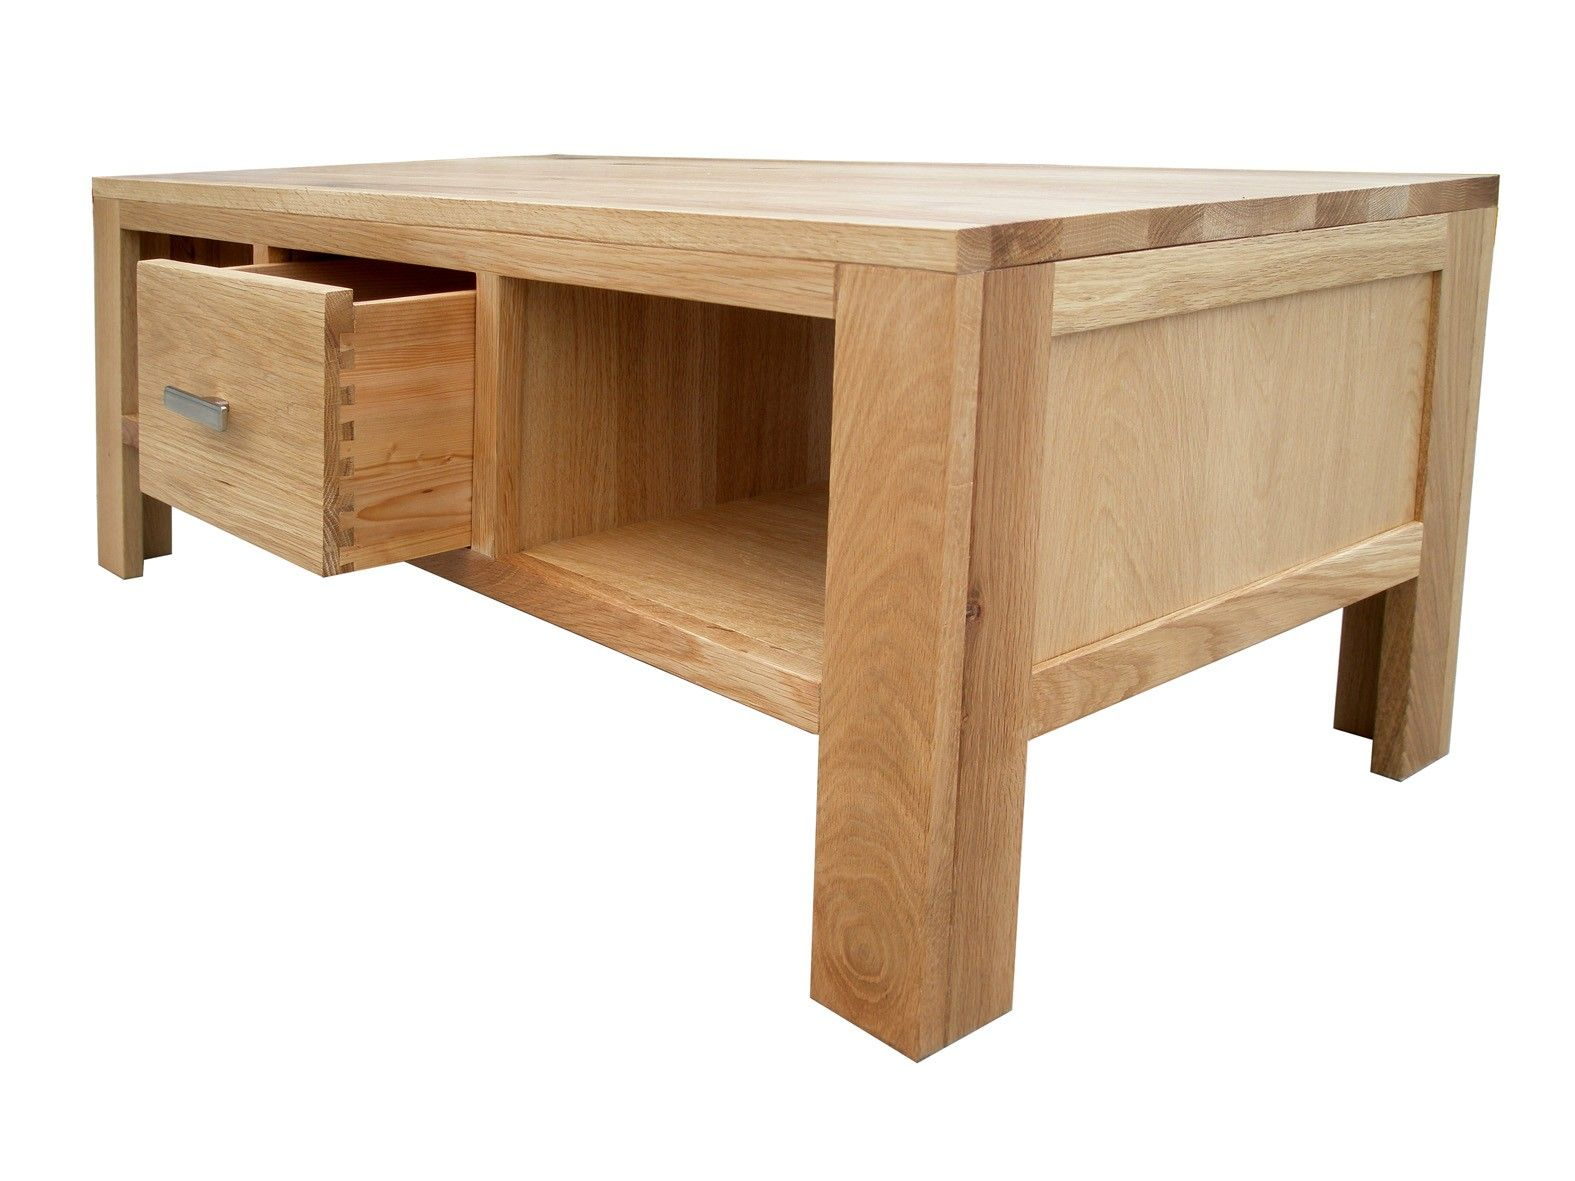 Solid Oak Coffee Table With 1 Drawer Solid Oak Coffee Table Oak Coffee Table Contemporary Table [ 1181 x 1575 Pixel ]